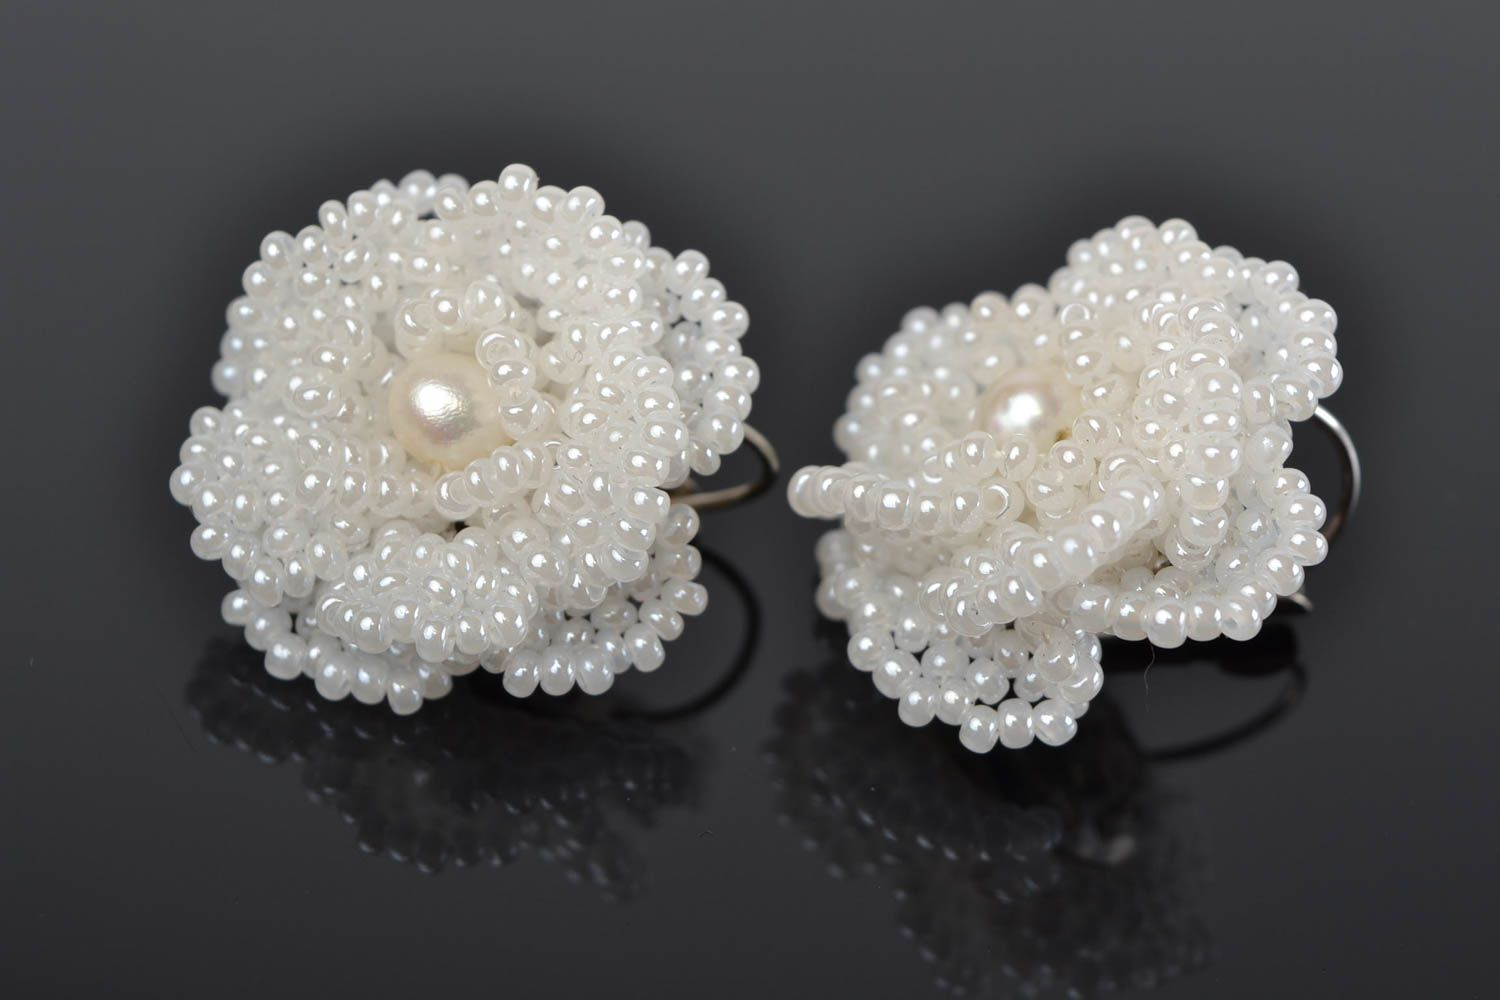 Madeheart Beautiful Handmade Large White Flower Earrings Woven Of